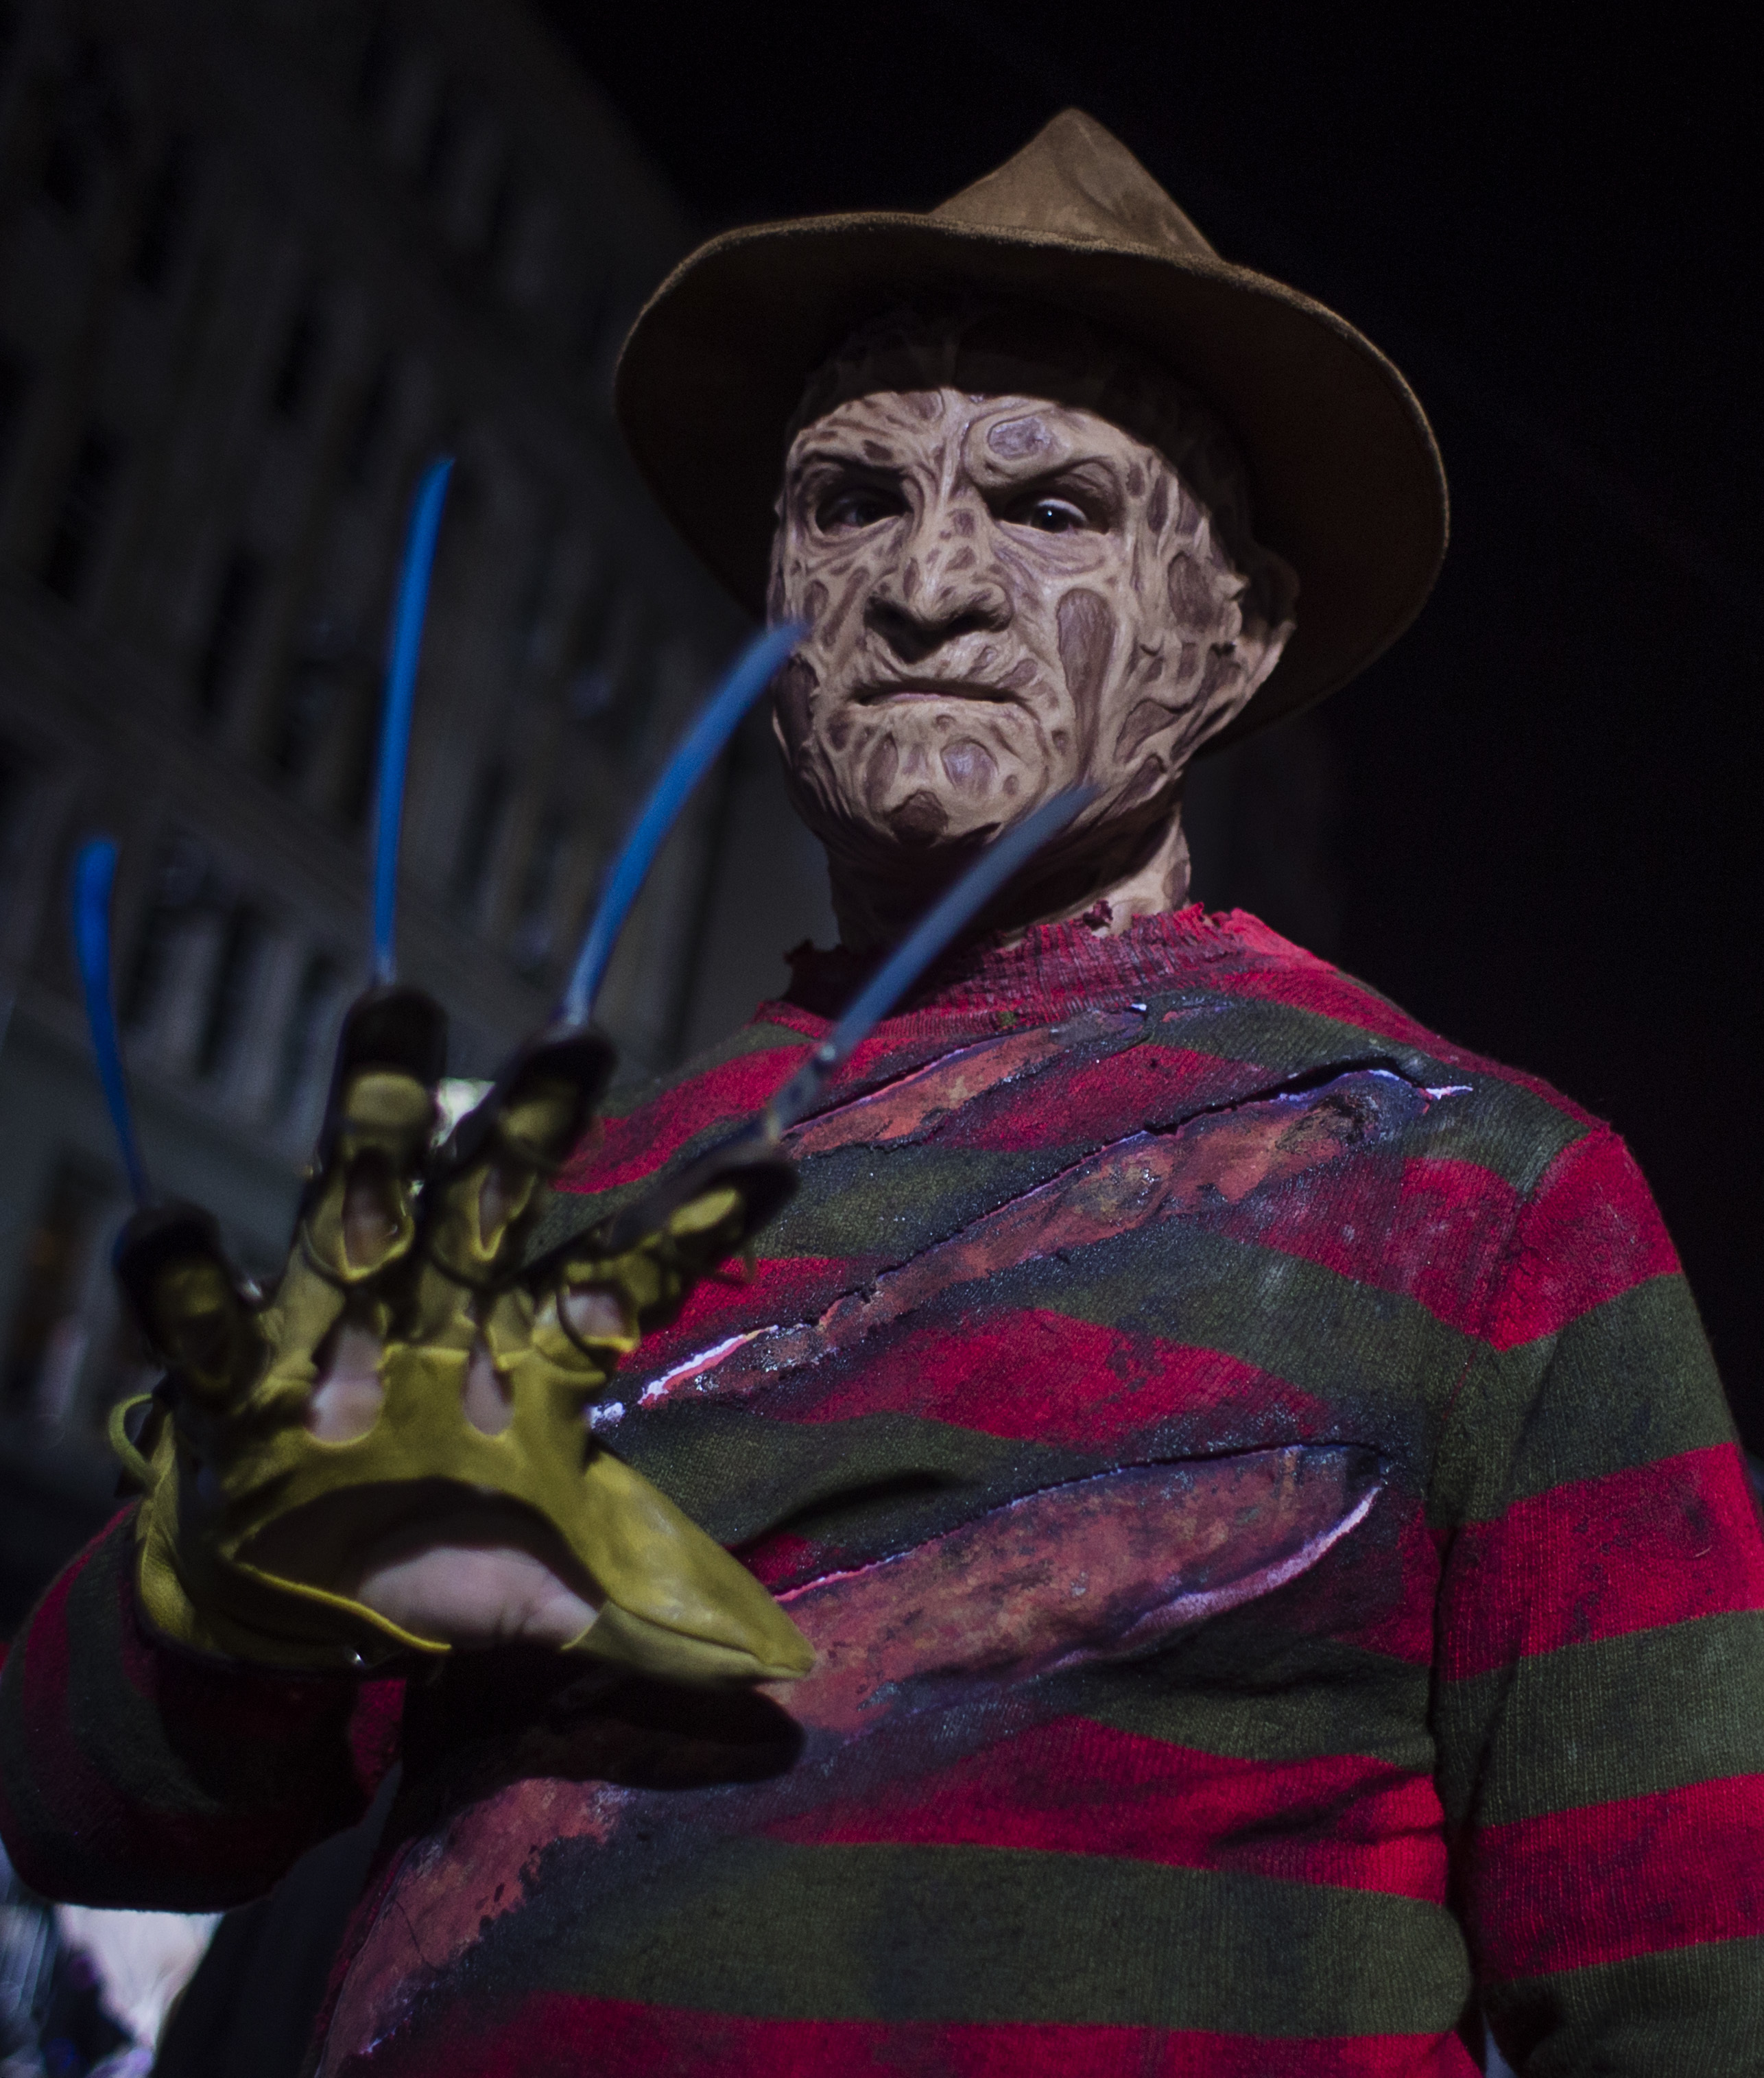 """<div class=""""meta image-caption""""><div class=""""origin-logo origin-image none""""><span>none</span></div><span class=""""caption-text"""">A reveler performes as he marches during the Greenwich Village Halloween Parade in New York, Monday, Oct. 31, 2016. (AP Photo/Andres Kudacki)</span></div>"""